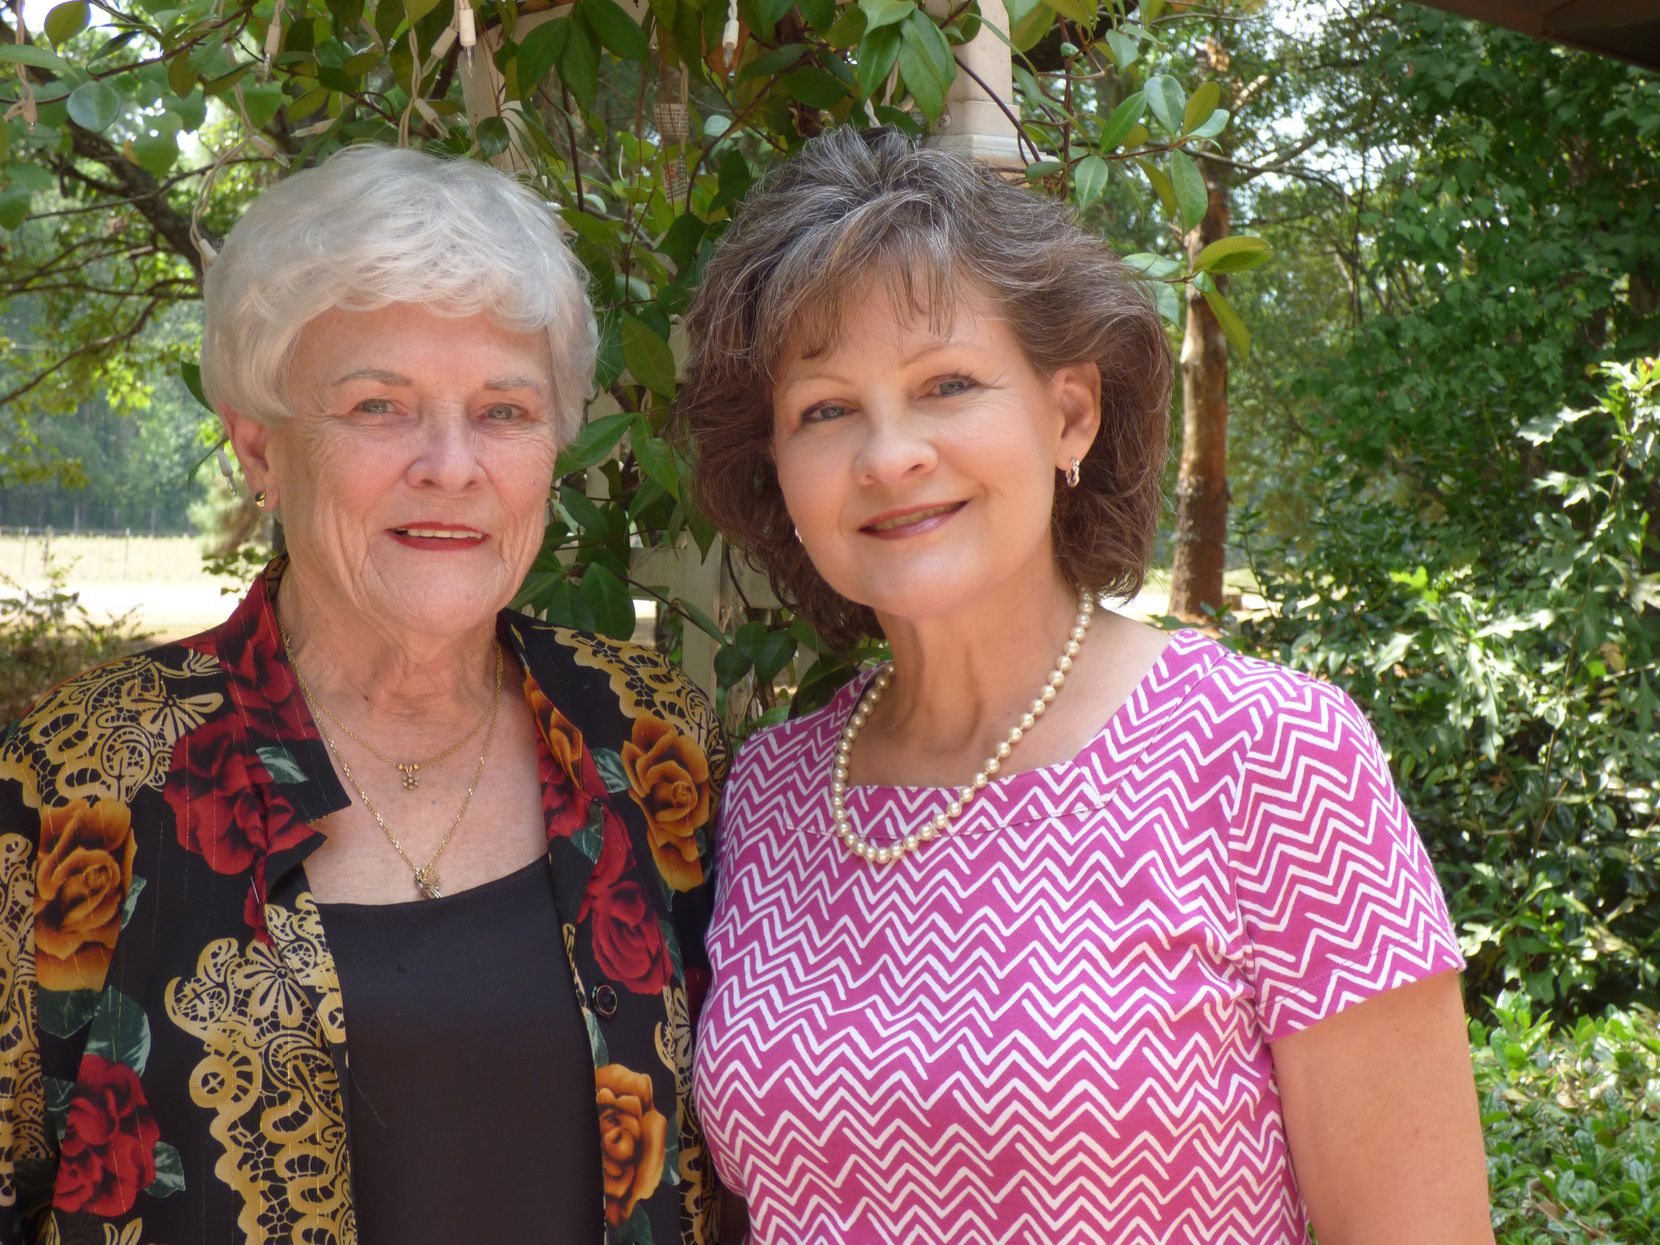 Vicky Dudley has tried for a year to help her mother, Judith Ann Smith, get her lost Social Security benefits totaling around $30,000. They blame Direct Express, a program run by Comerica Bank on behalf of the U.S. Treasury.